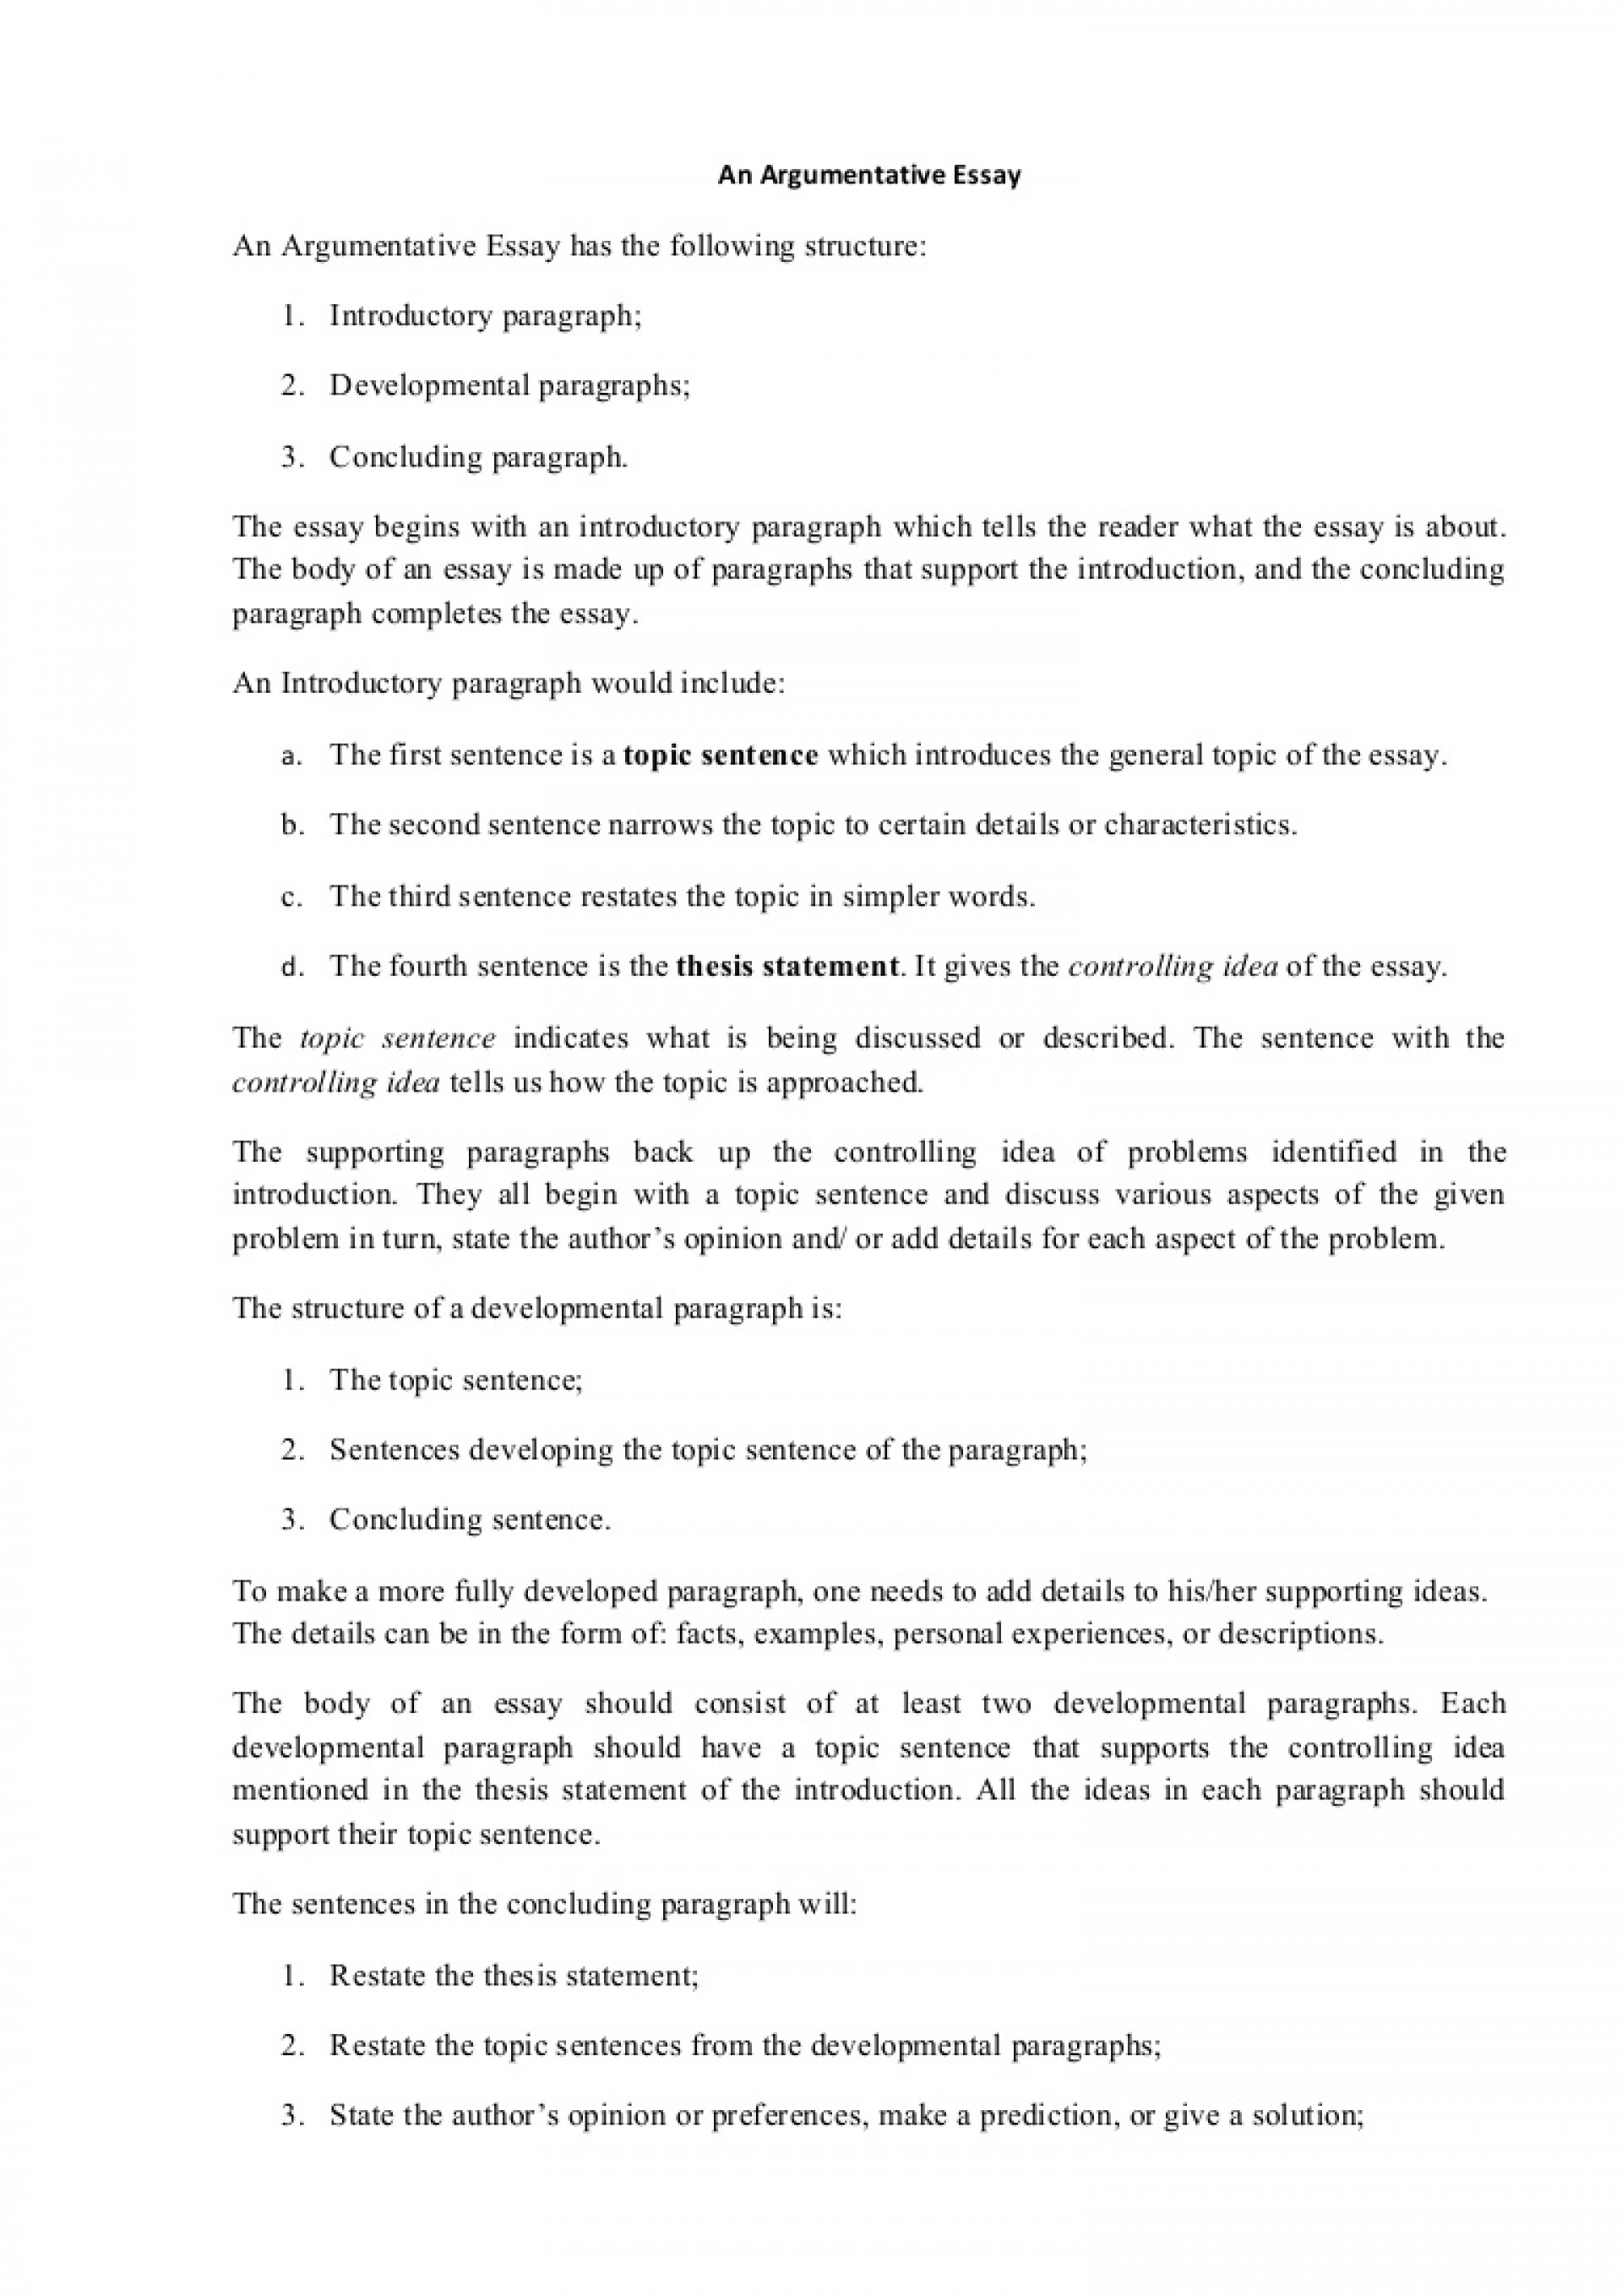 016 Essay Example How To Conclude An Argumentative Argumentativeessaystructure Phpapp01 Thumbnail Top Teach Writing Write A Closing Paragraph For Step By Ppt Middle School 1920